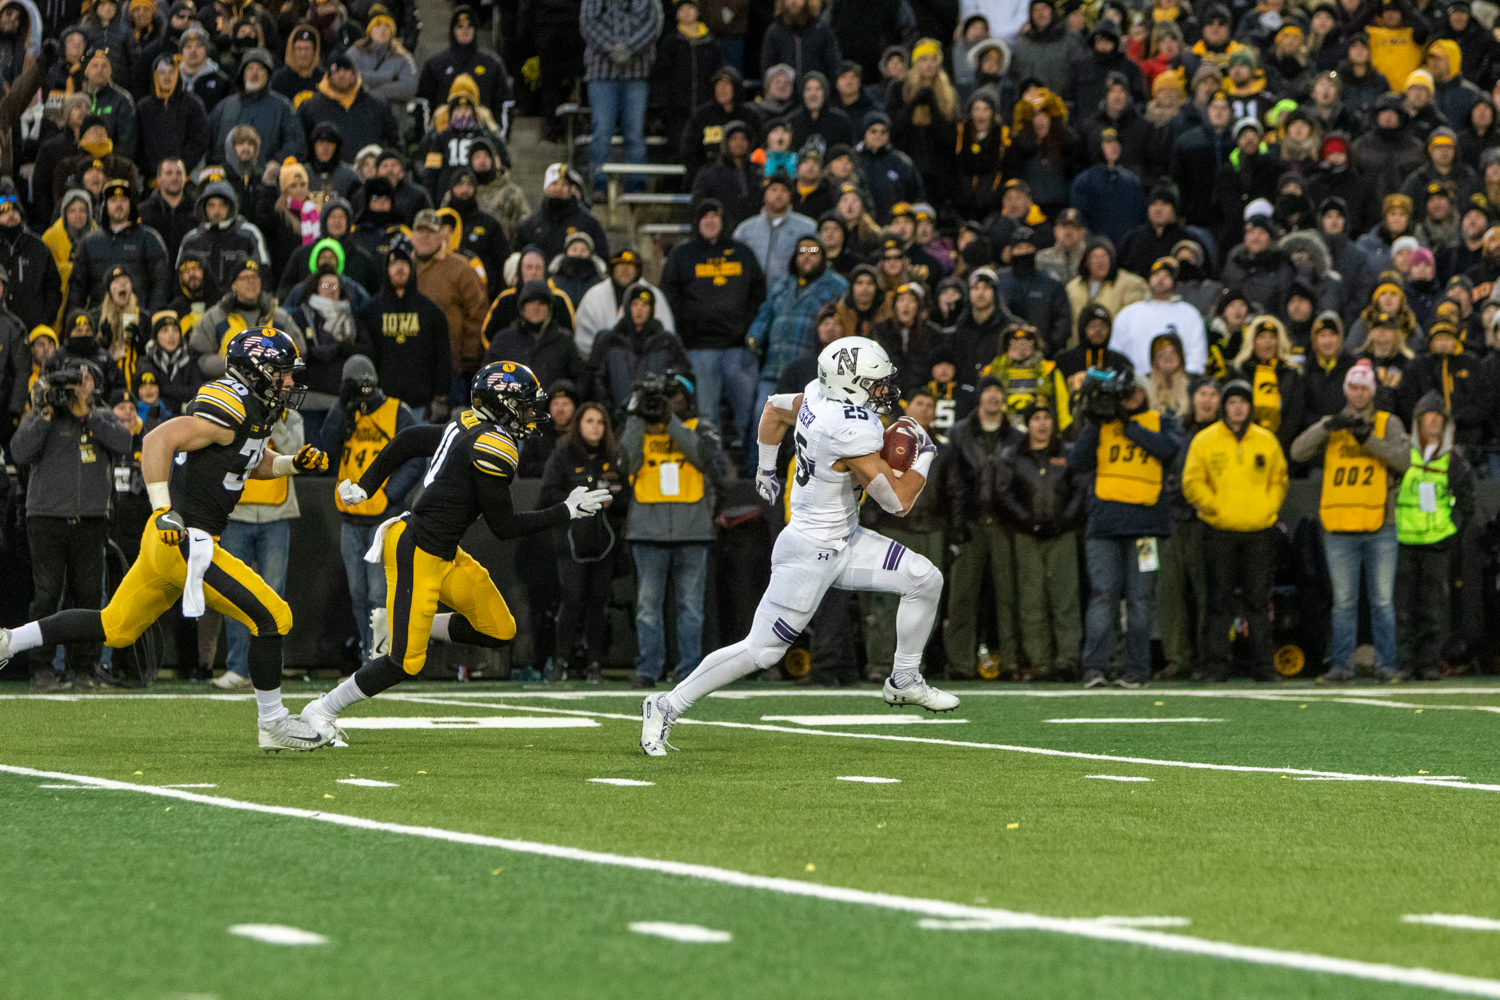 Northwestern+running+back+Isaiah+Bowser+%2325+runs+away+from+the+Iowa+defense+during+a+game+against+Iowa+on+Saturday%2C+Nov.+10%2C+2018+at+Kinnick+Stadium+in+Iowa+City.+Bowser+would+score+on+this+play+and+the+Wildcats+defeated+the+Hawkeyes+14-10.+%28David+Harmantas%2FThe+Daily+Iowan%29